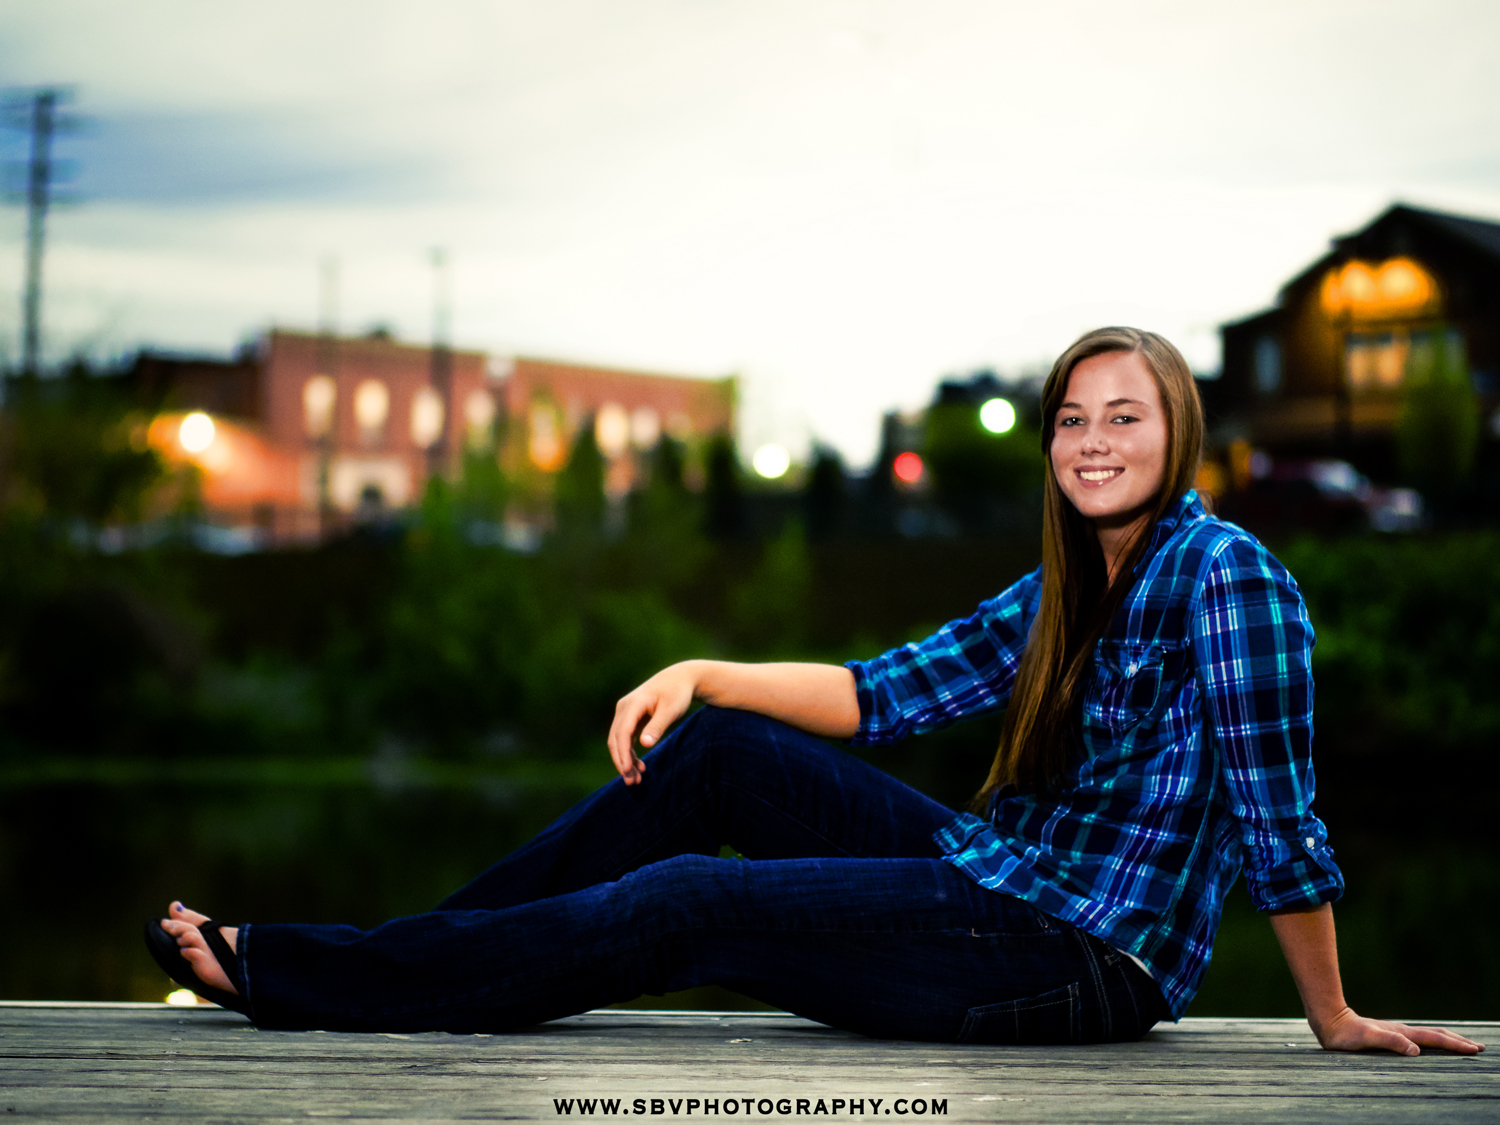 High school senior photo at the edge of the pier at the Hobart, Indiana lakefront.